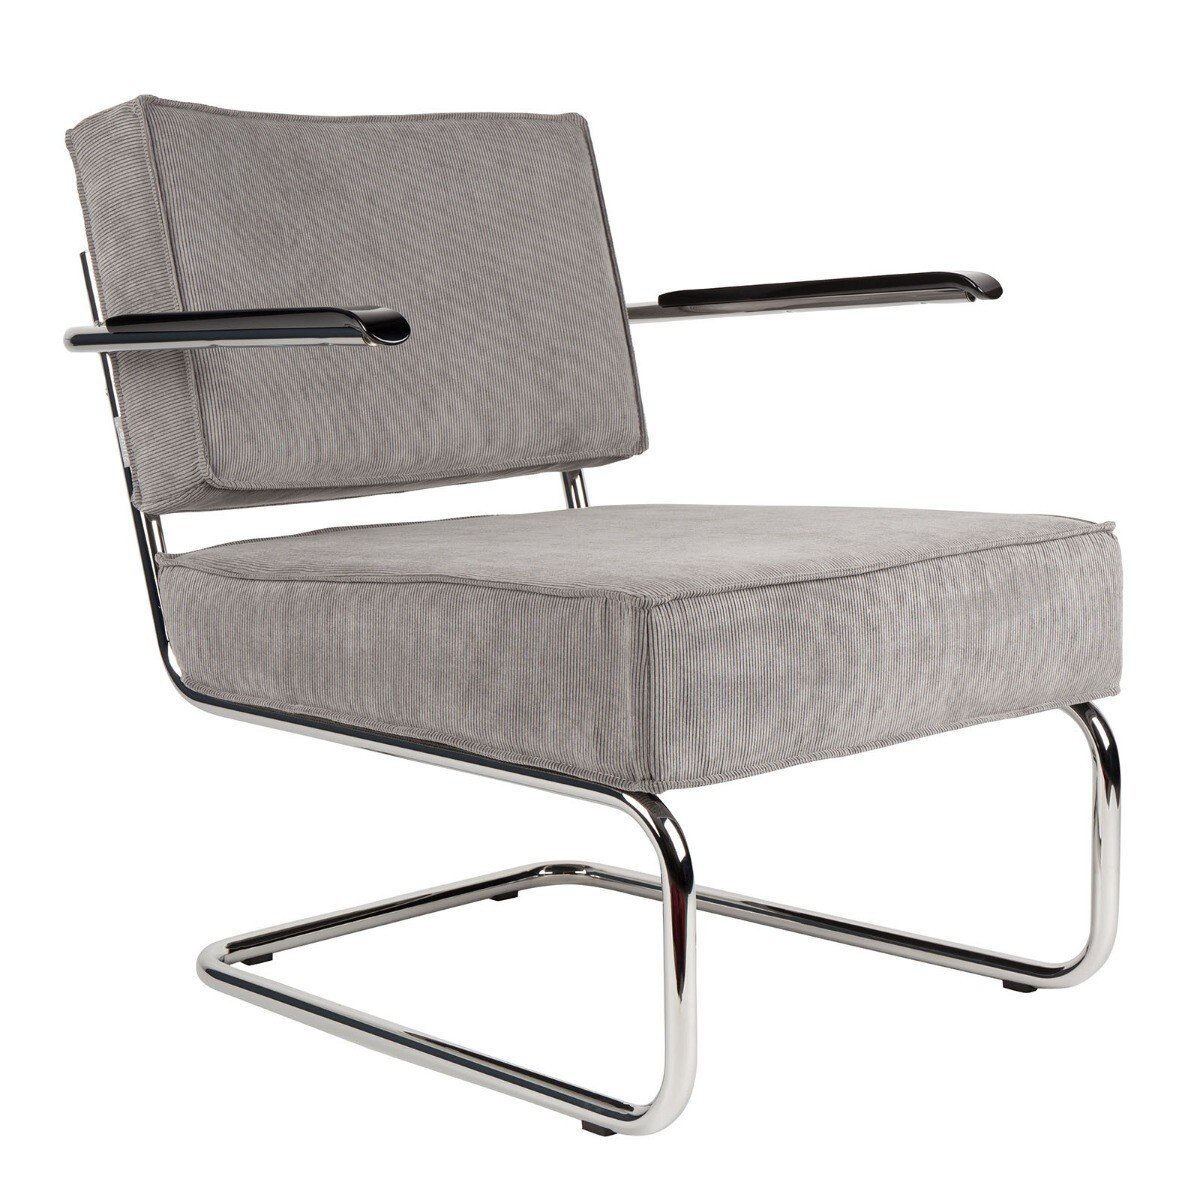 LOUNGE CHAIR RIDGE RIB ARM CO